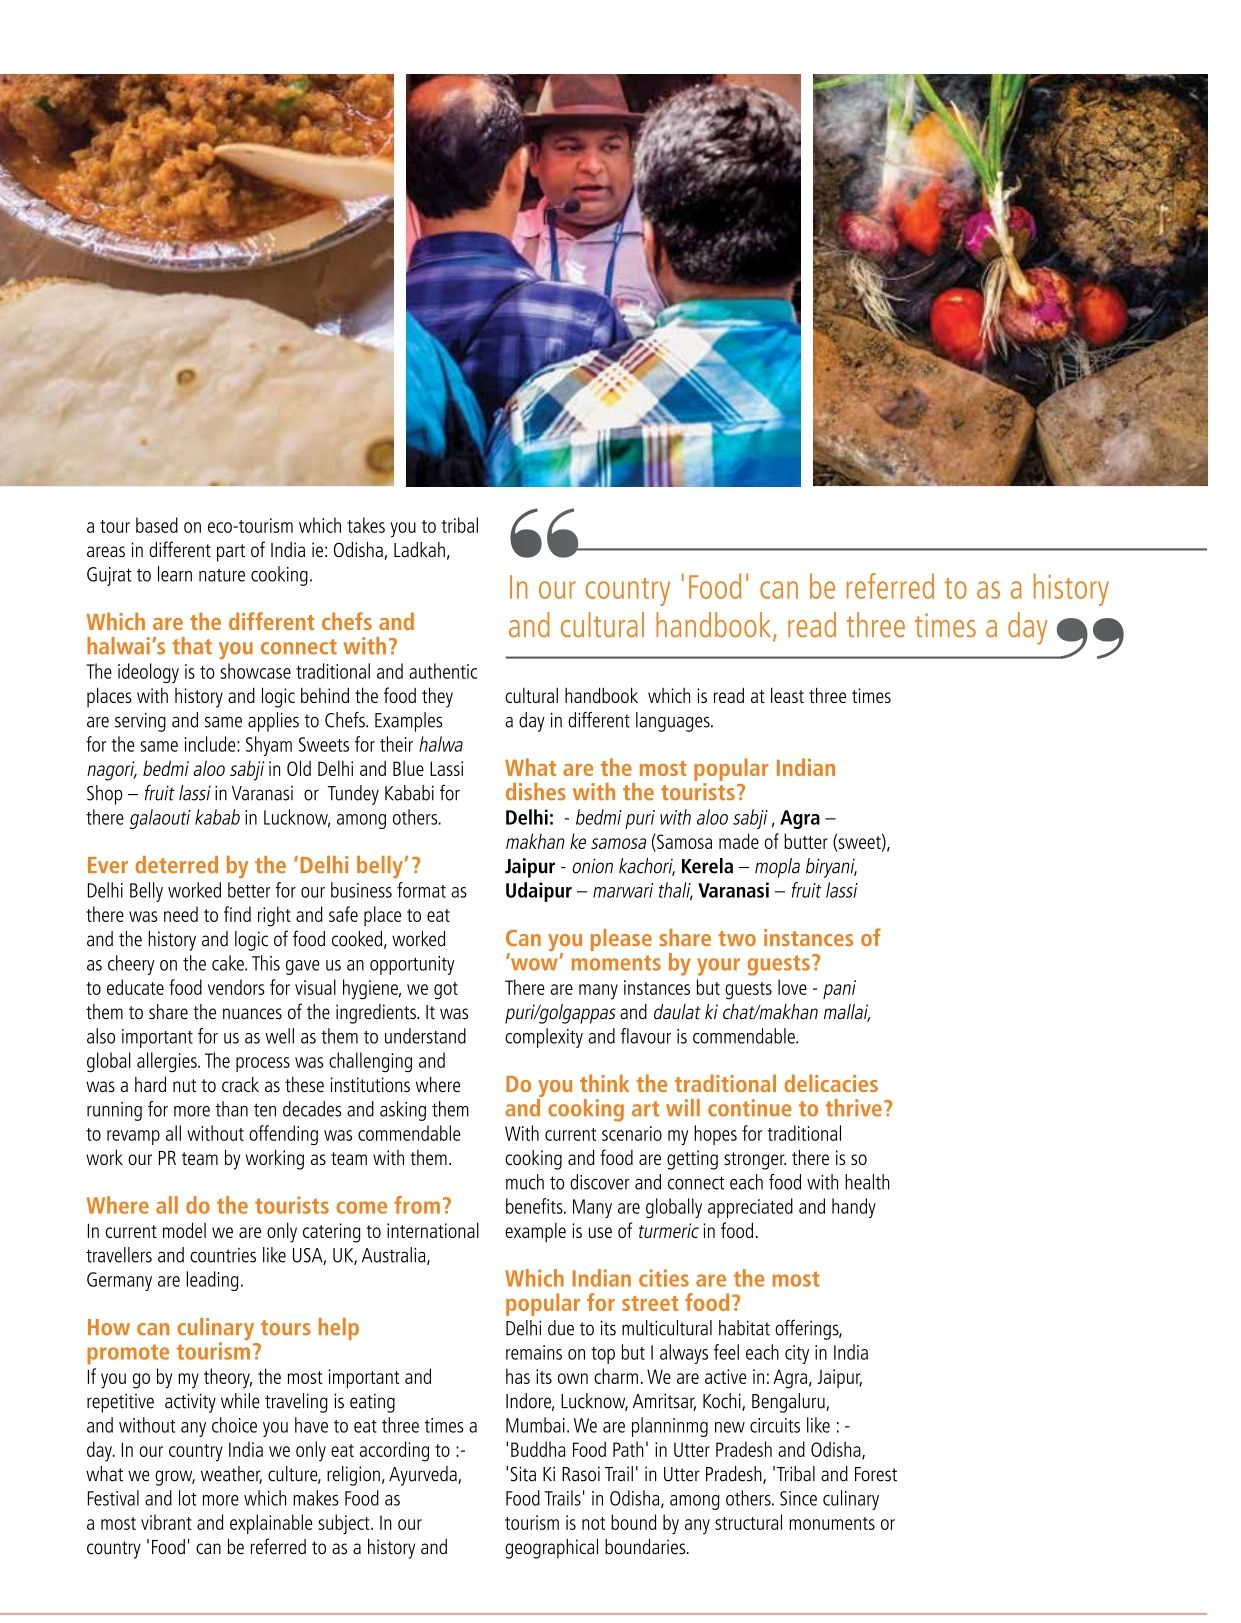 FHRAI - India Food Tour_page-2